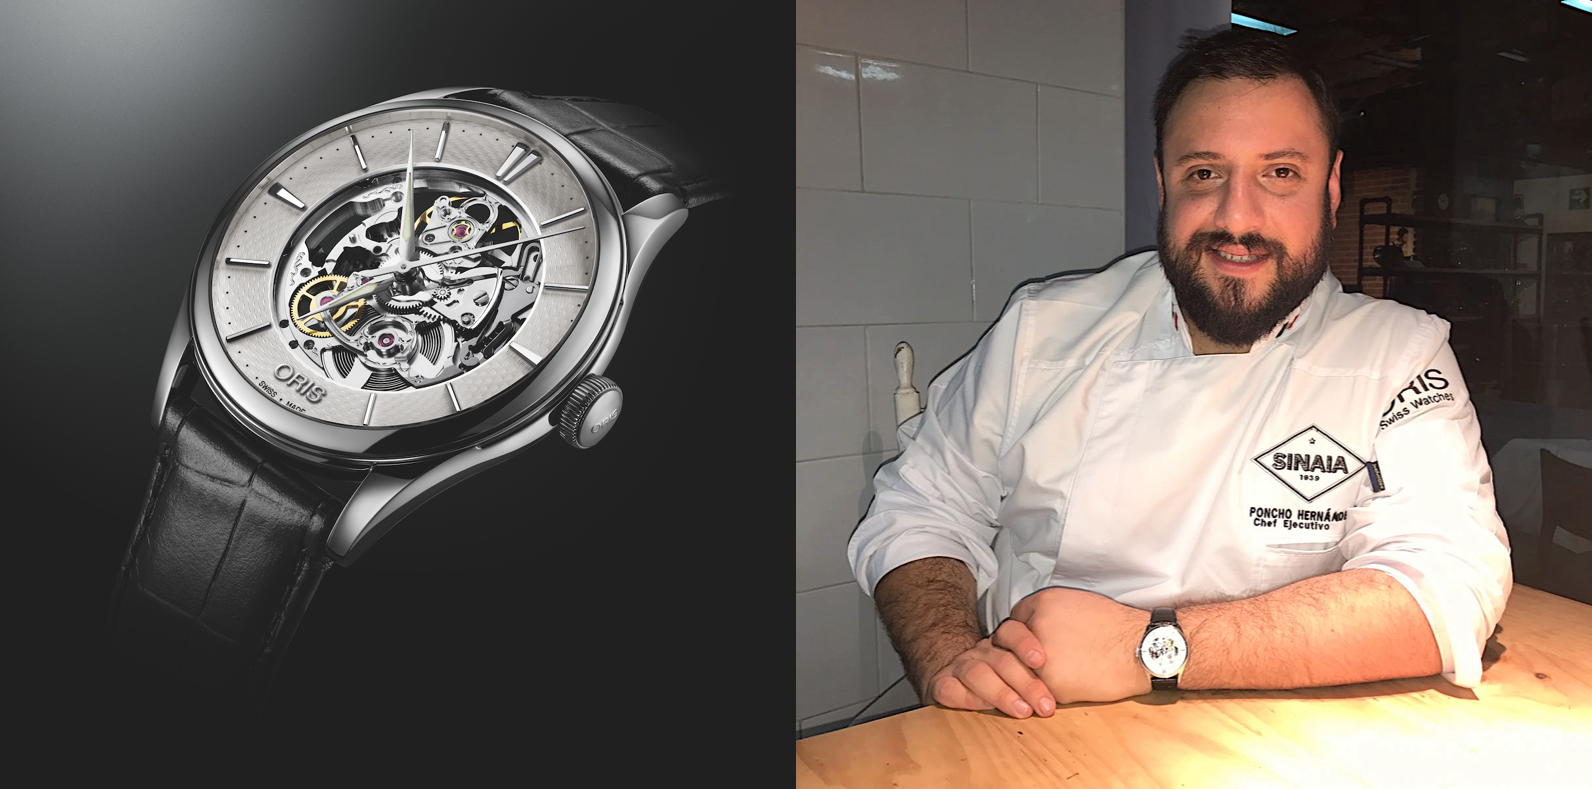 Relojes_chef_poncho_Hernandez_Oris_Watches_World_SIANIA_Artelier_Skeleton